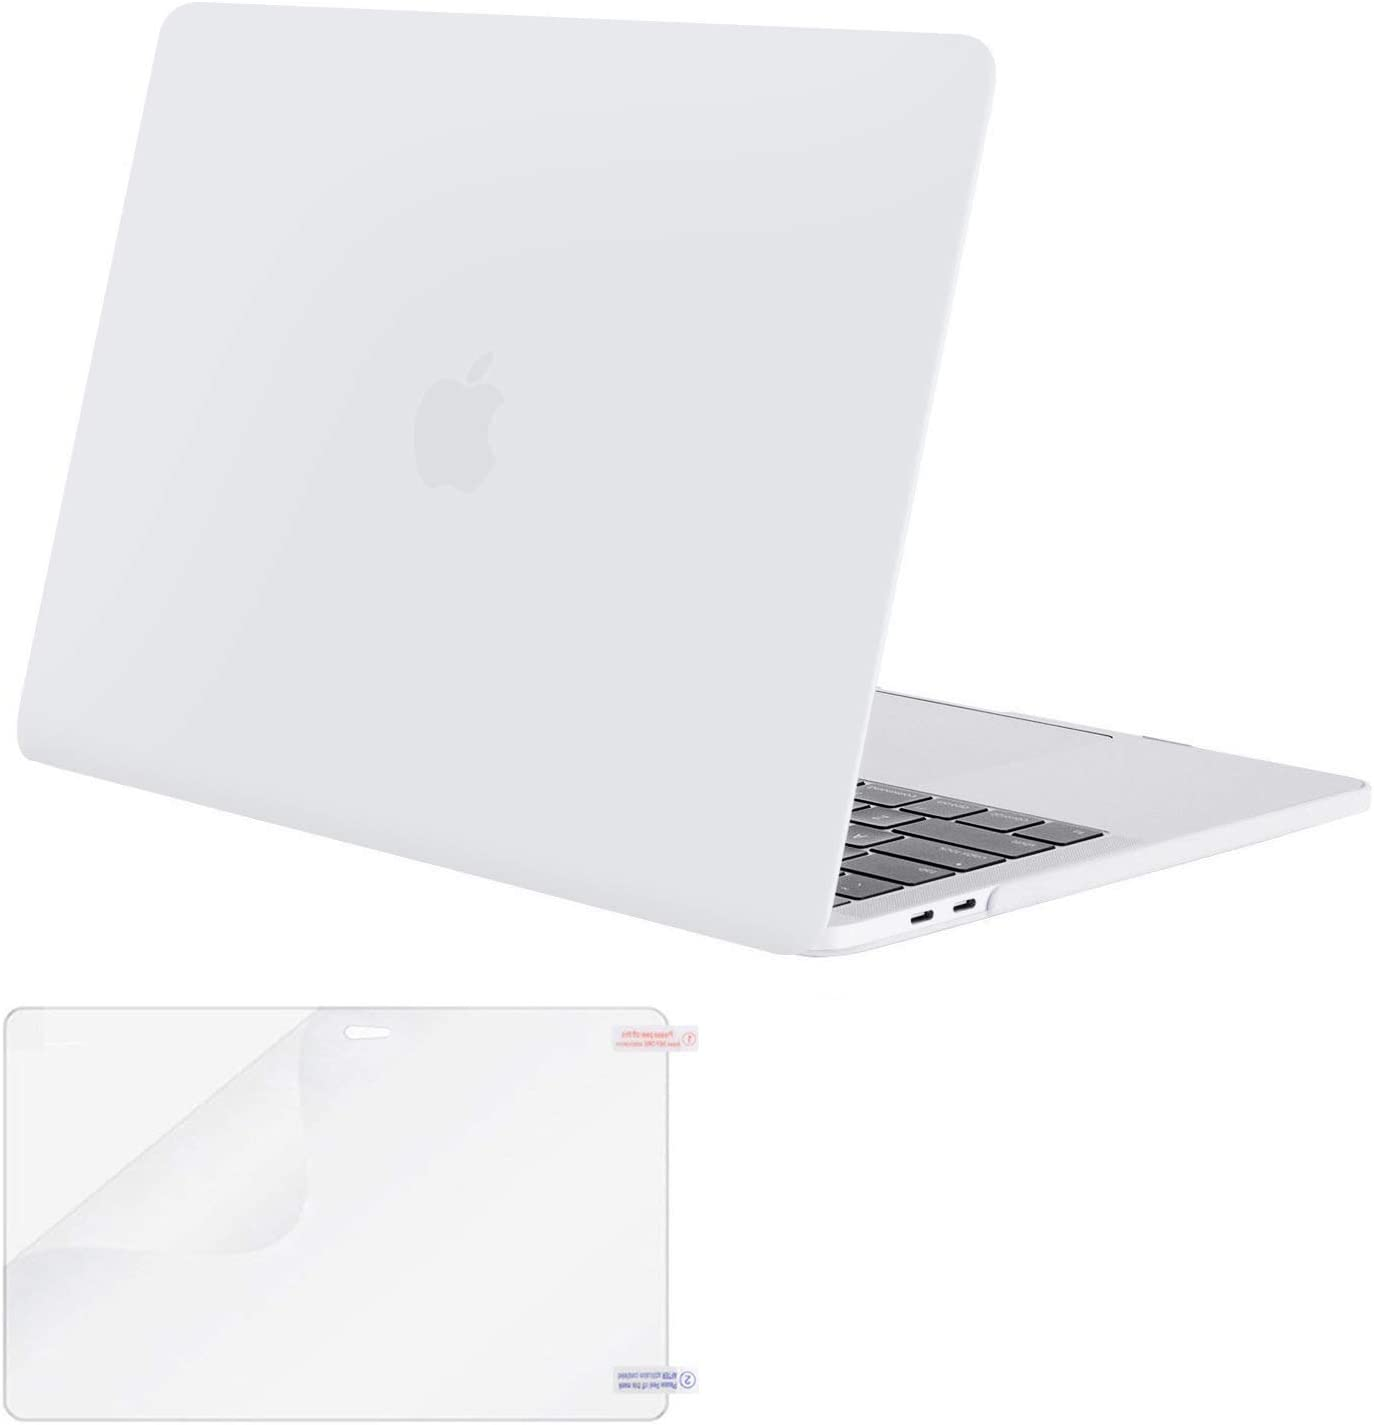 MOSISO MacBook Pro 13 inch Case 2019 2018 2017 2016 Release A2159 A1989 A1706 A1708, Plastic Hard Shell Case&Screen Protector Compatible with MacBook Pro 13 inch with/Without Touch Bar, White